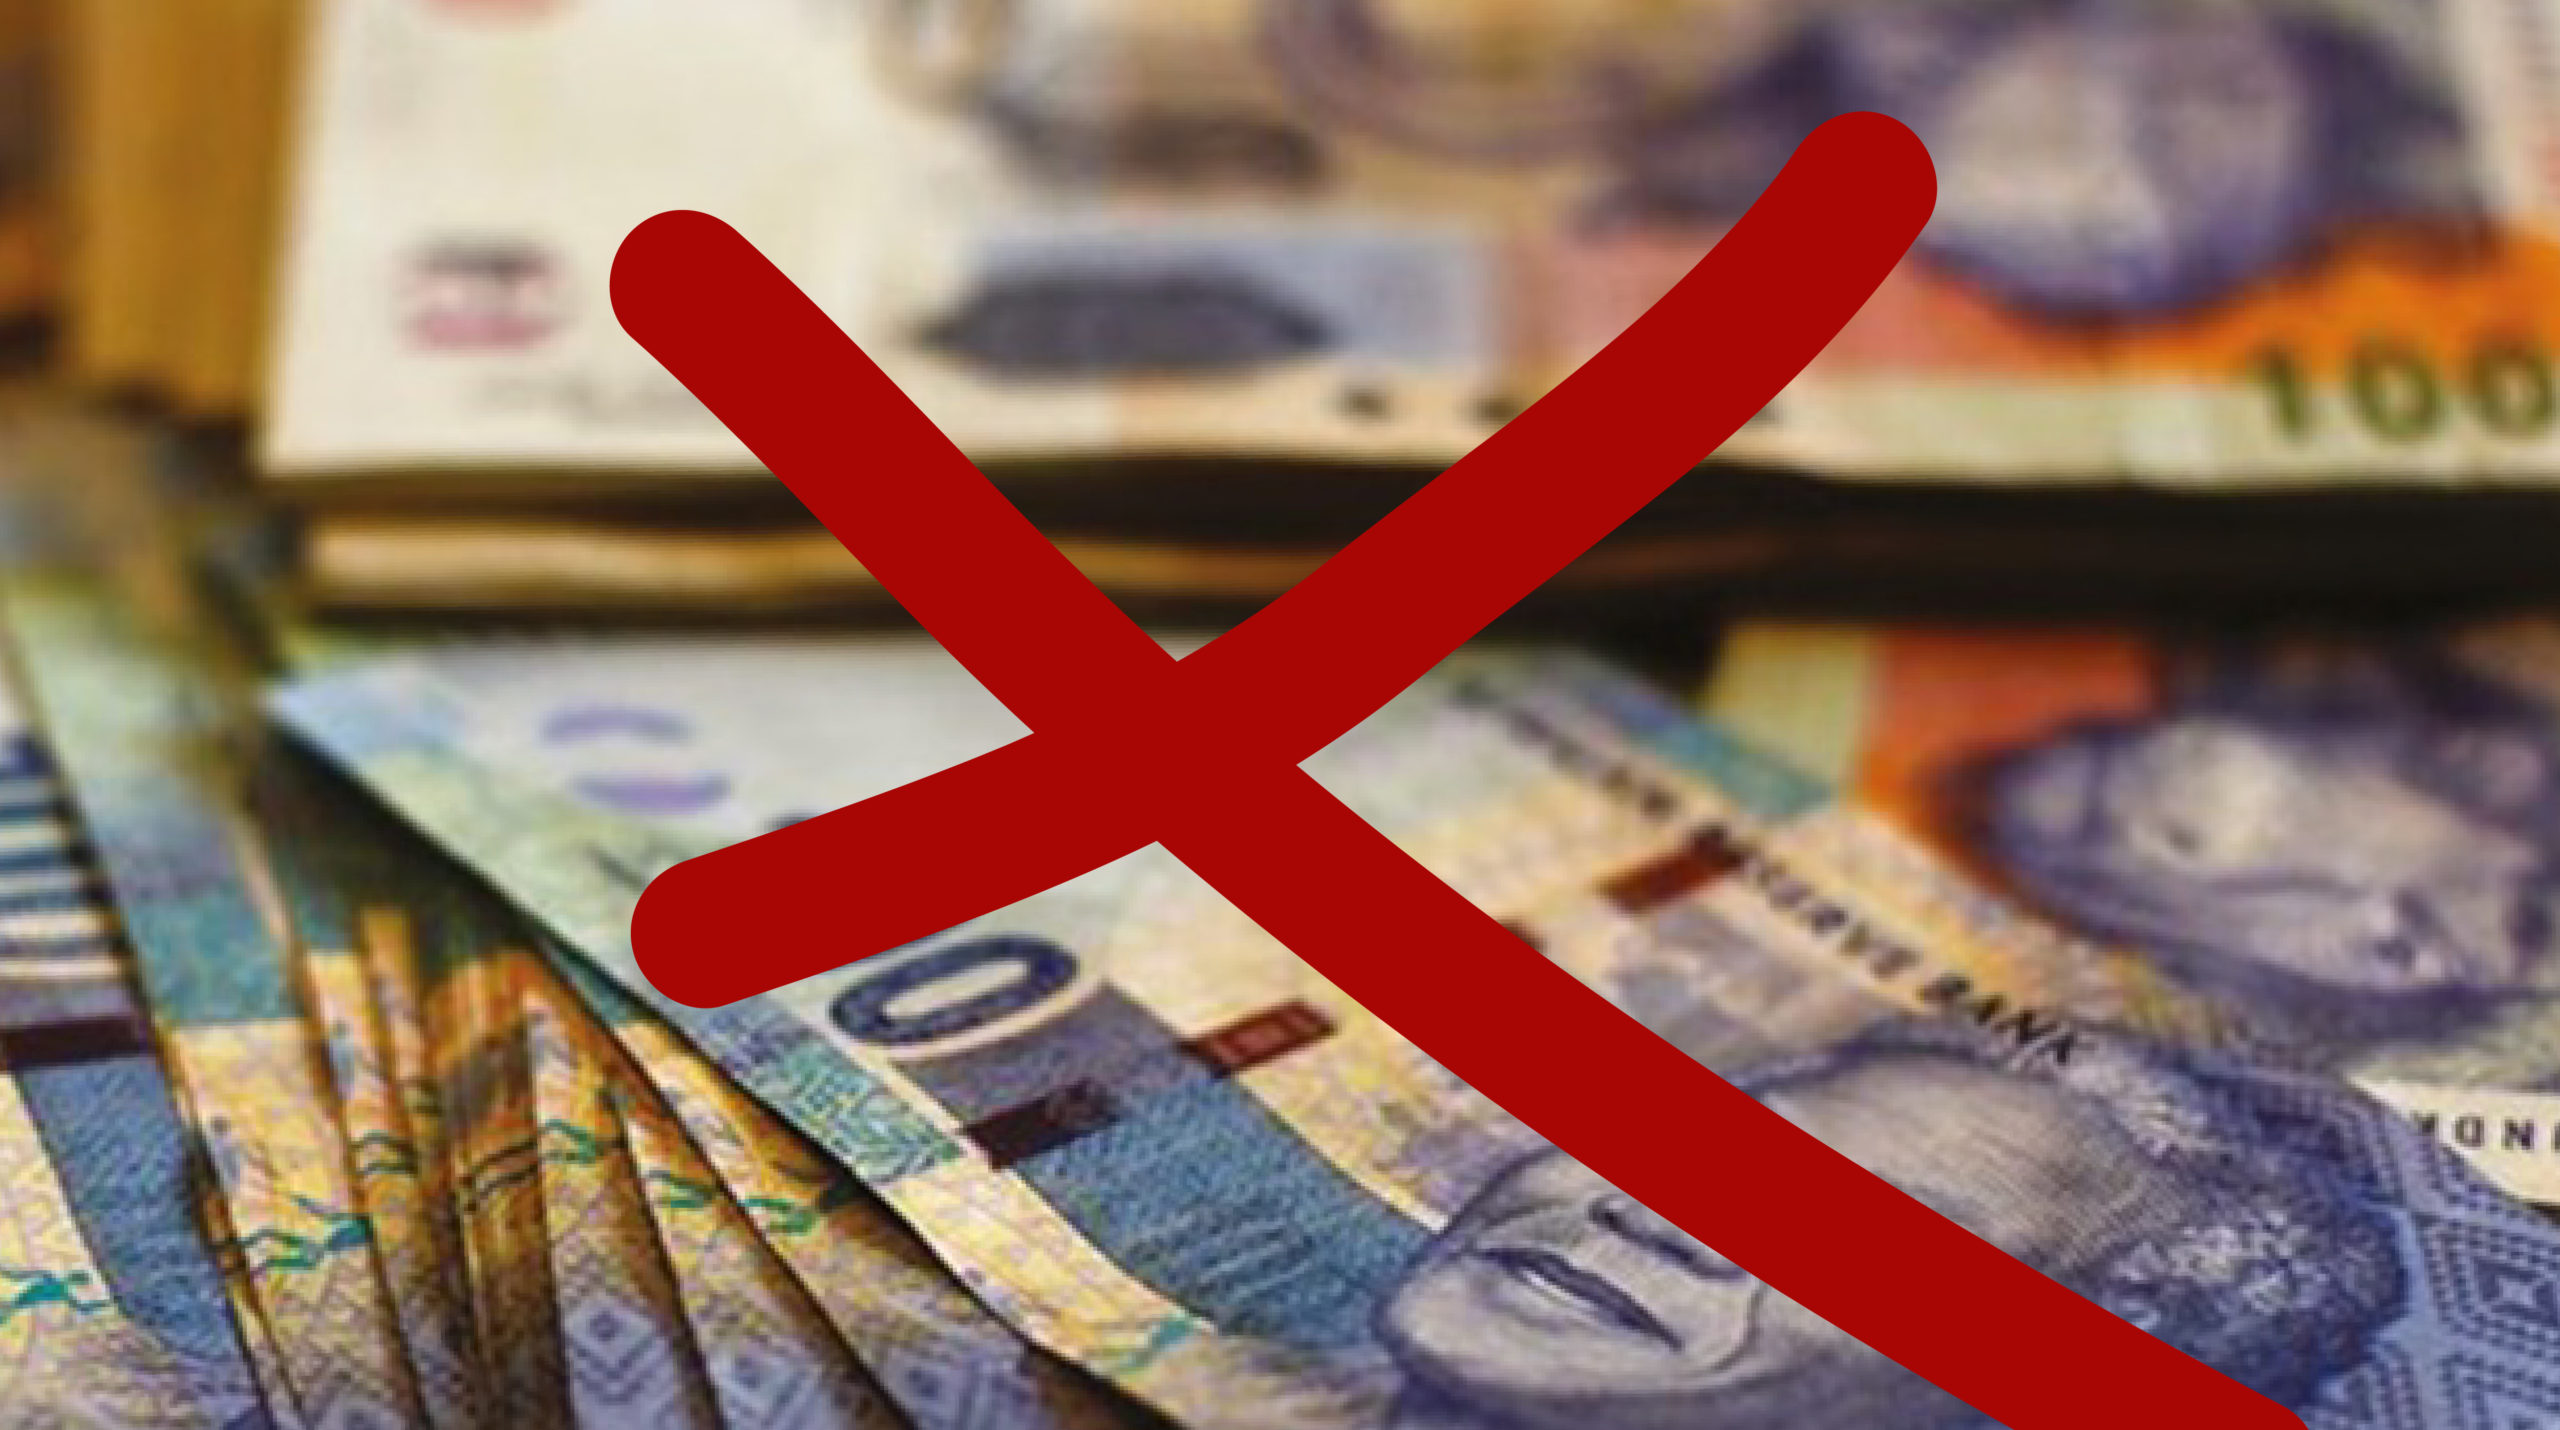 DA cannot support EC budget that fails to address health, drought